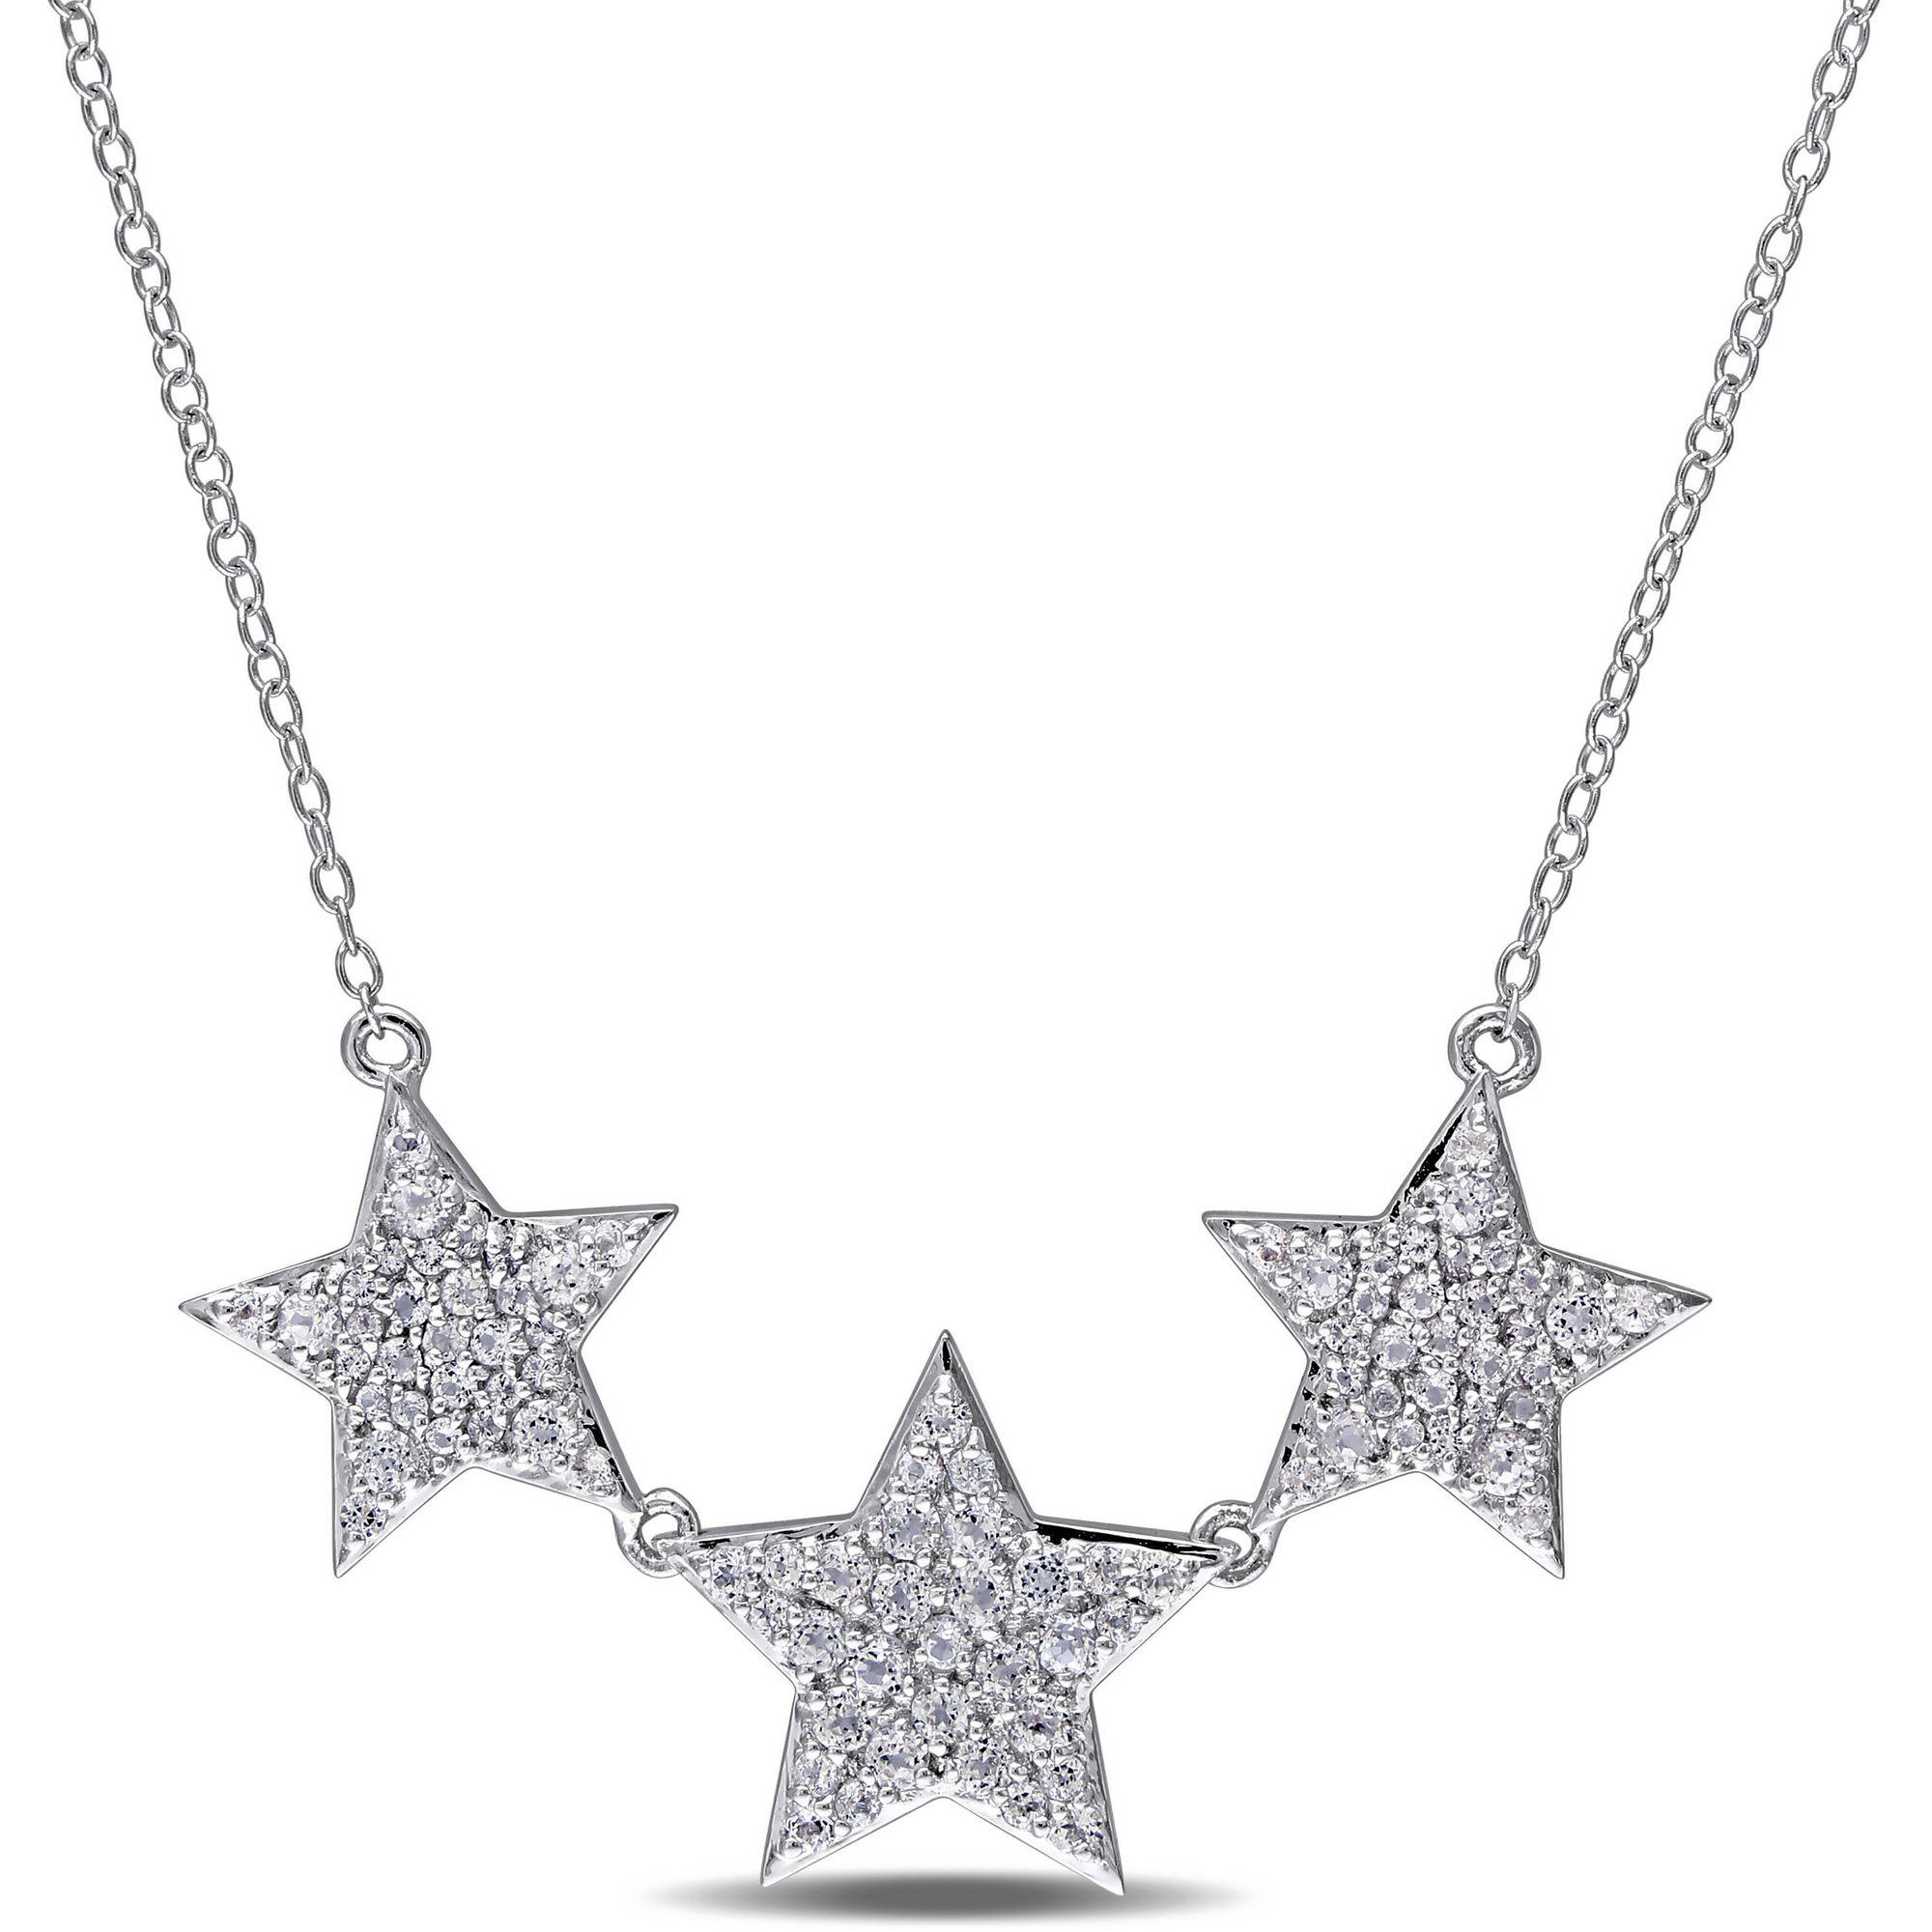 "Miabella 1-5 8 Carat T.G.W. White Topaz Sterling Silver Triple Star Necklace, 17"" by Miabella"